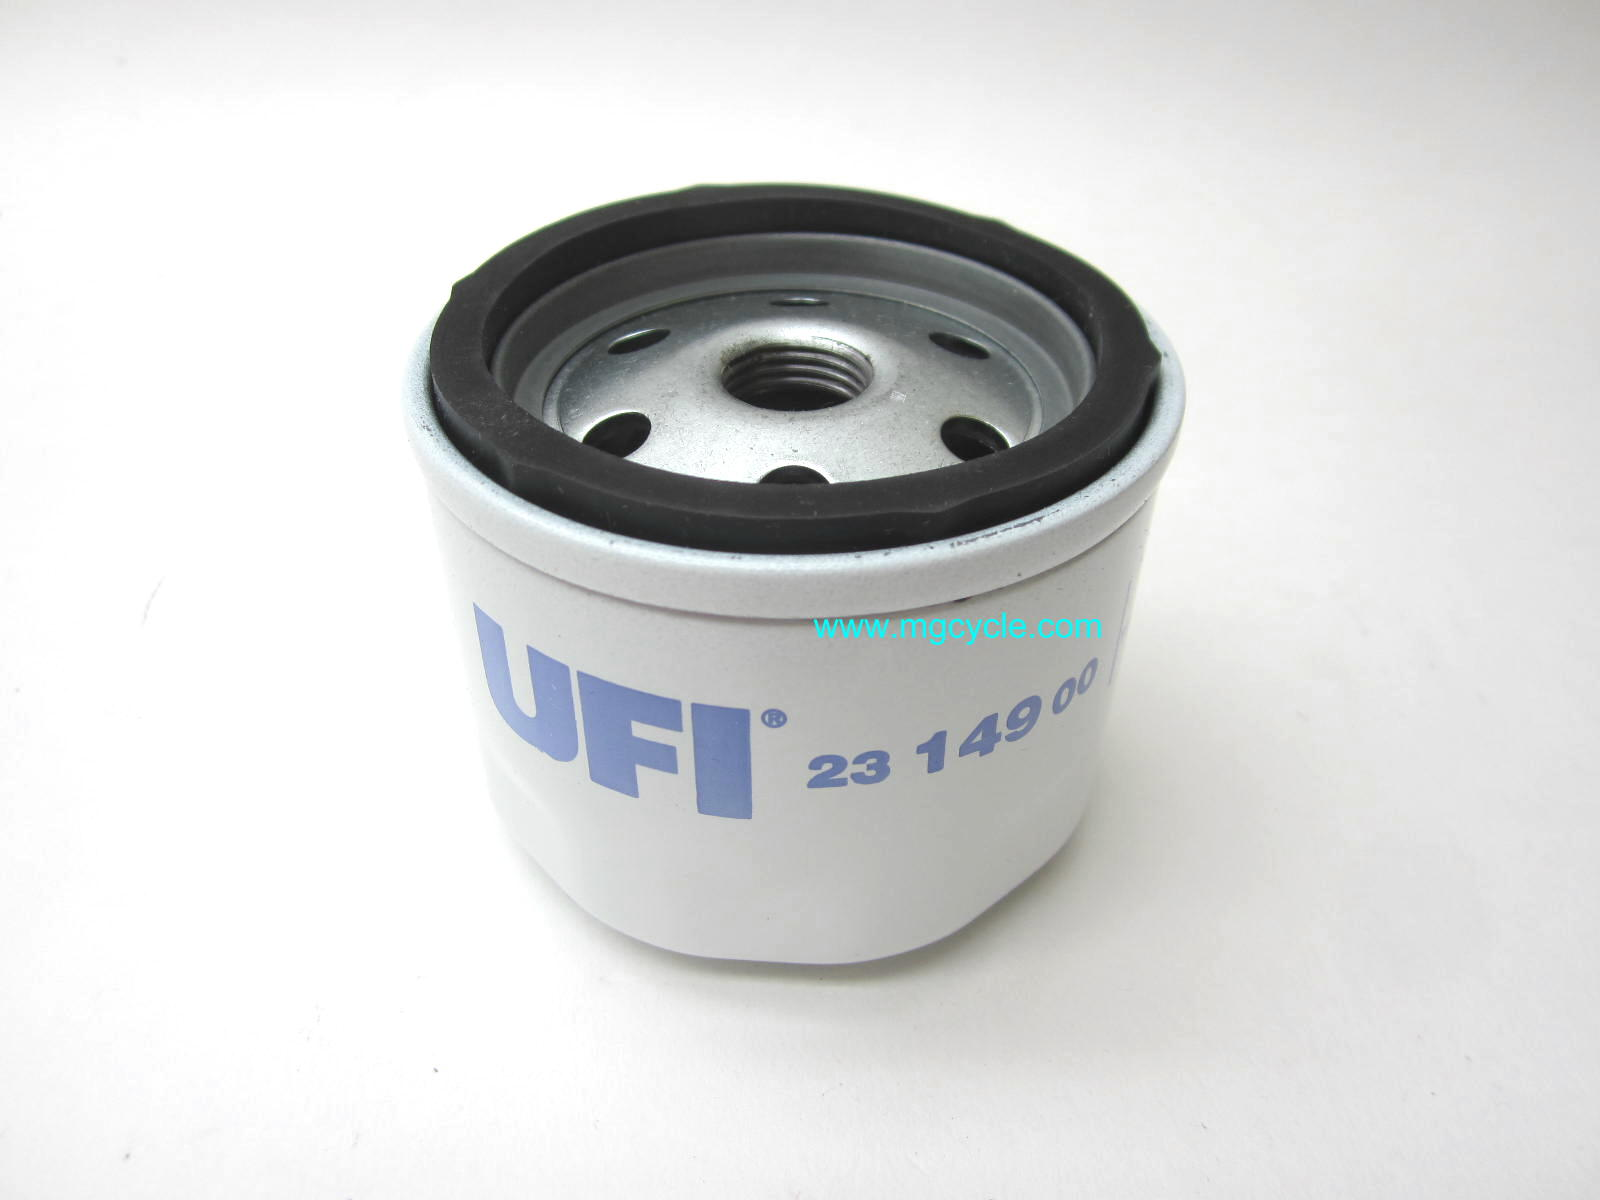 UFI 23 149 00 oil filter Guzzi 850 and 1000cc GU14153000